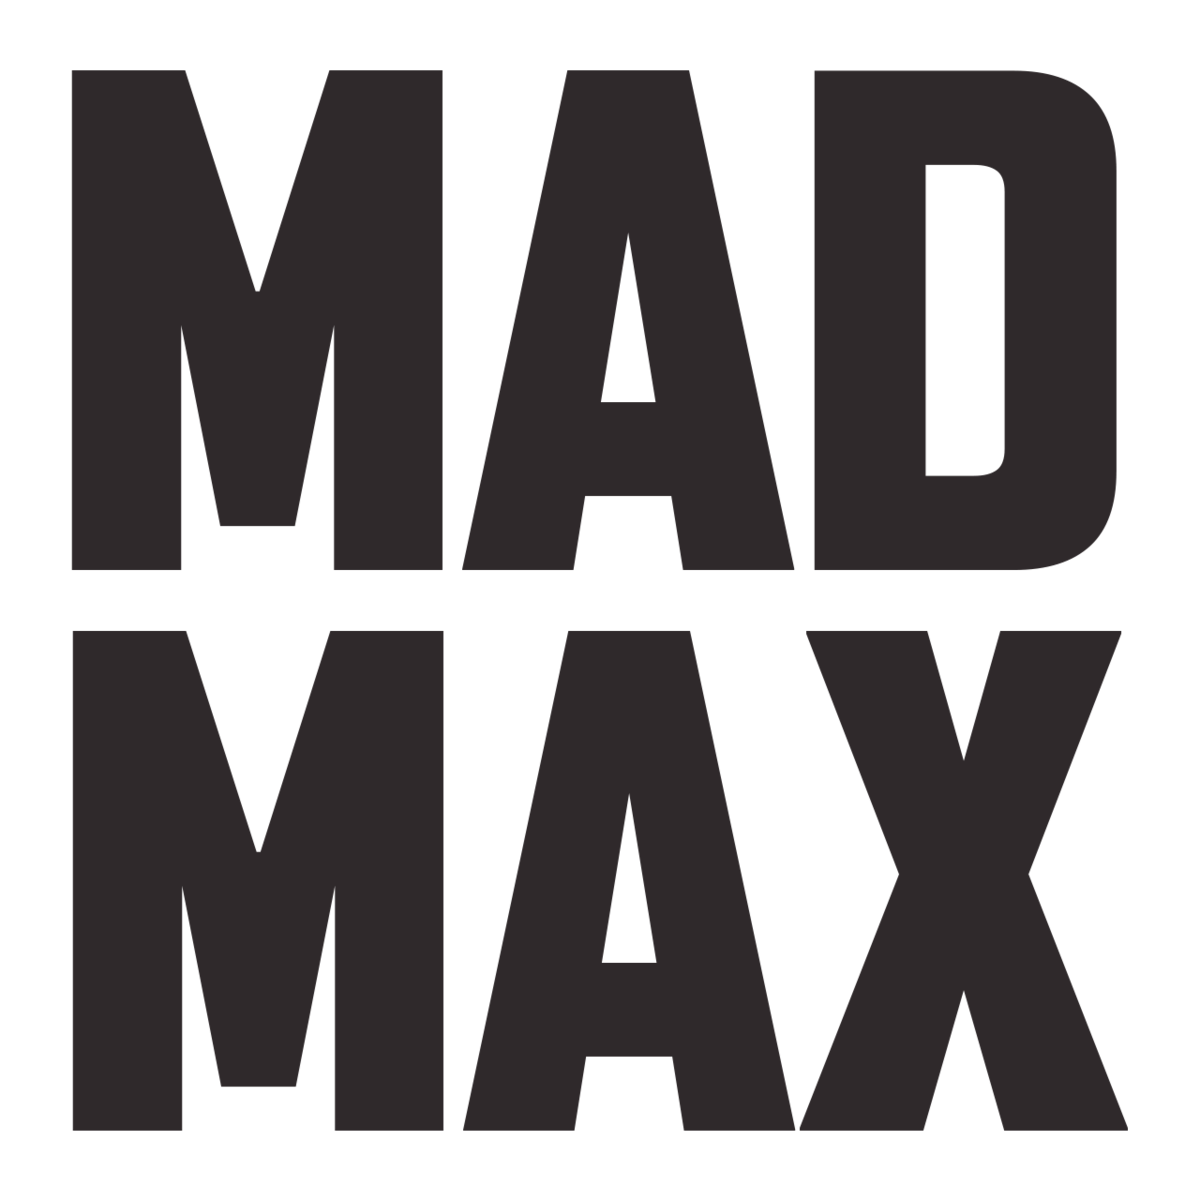 mad max franchise wikipedia. Black Bedroom Furniture Sets. Home Design Ideas